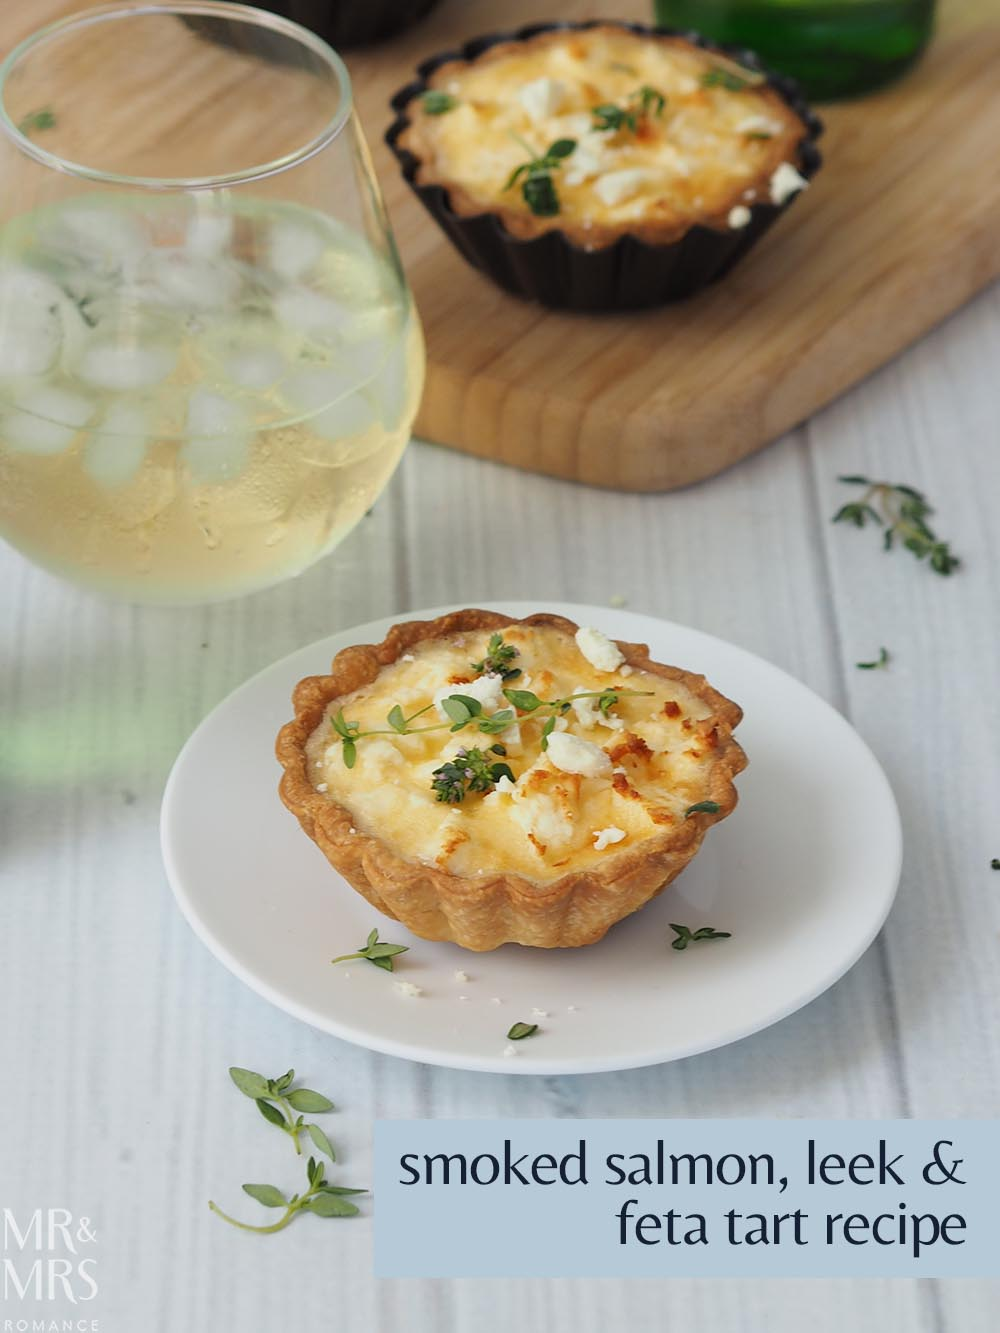 Smoked salmon leek and feta tart summer recipe - Mr & Mrs Romance